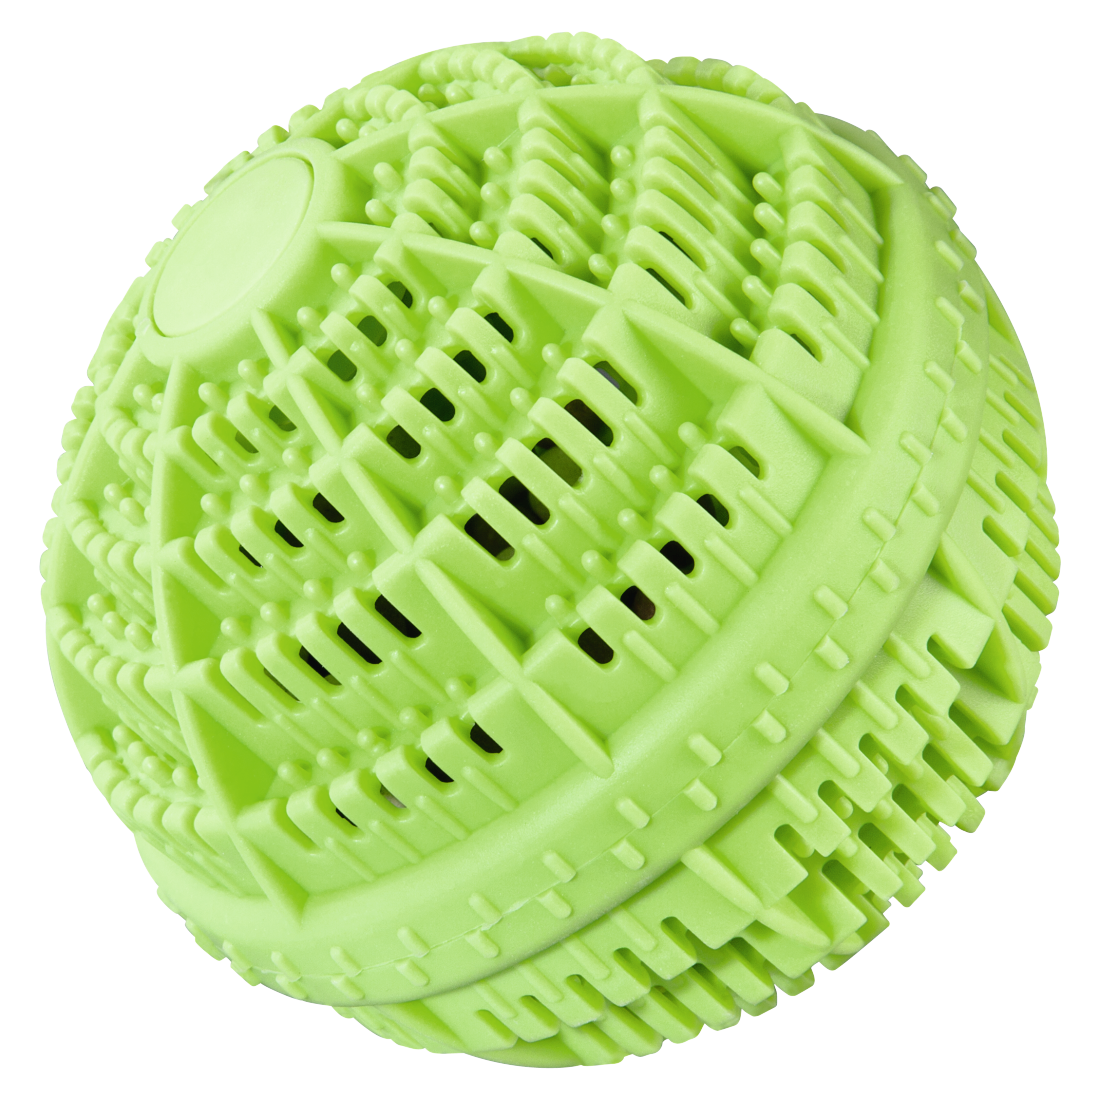 abx High-Res Image - Xavax, Power Pearls Wash Ball